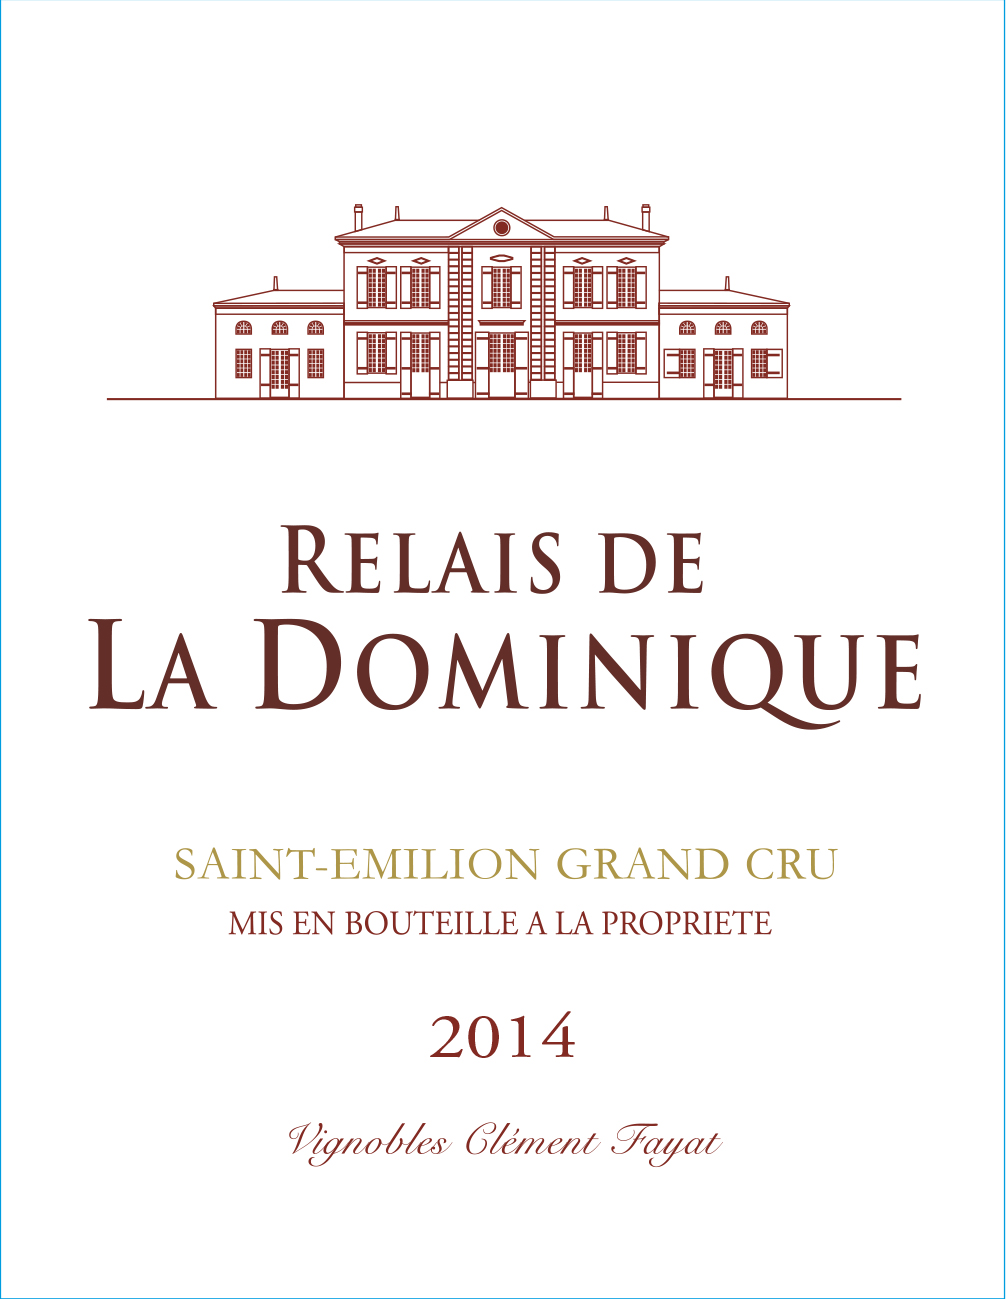 Relais de la Dominique AOC Saint-Emilion Grand Cru Rouge 2014